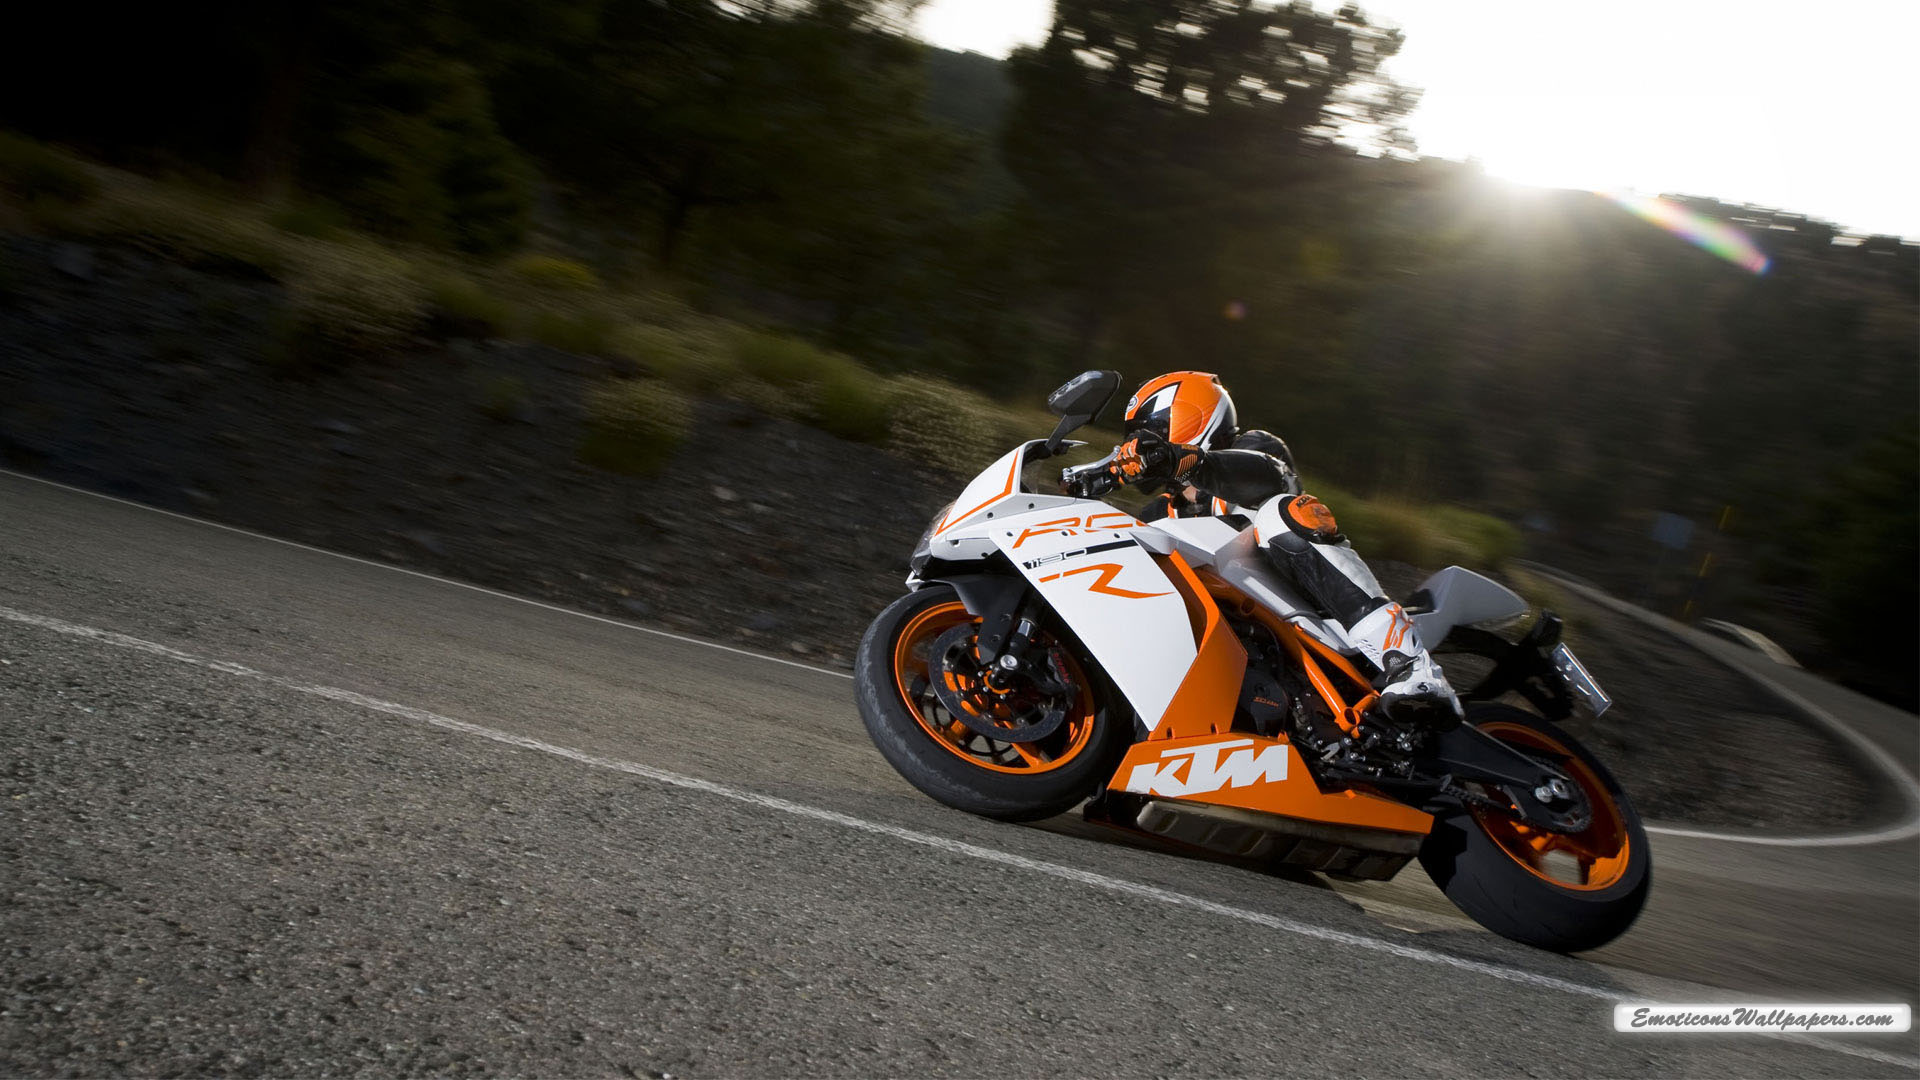 KTM RC8 R 2011 15 Wallpapers Desktop Wallpapers HD 1920x1080